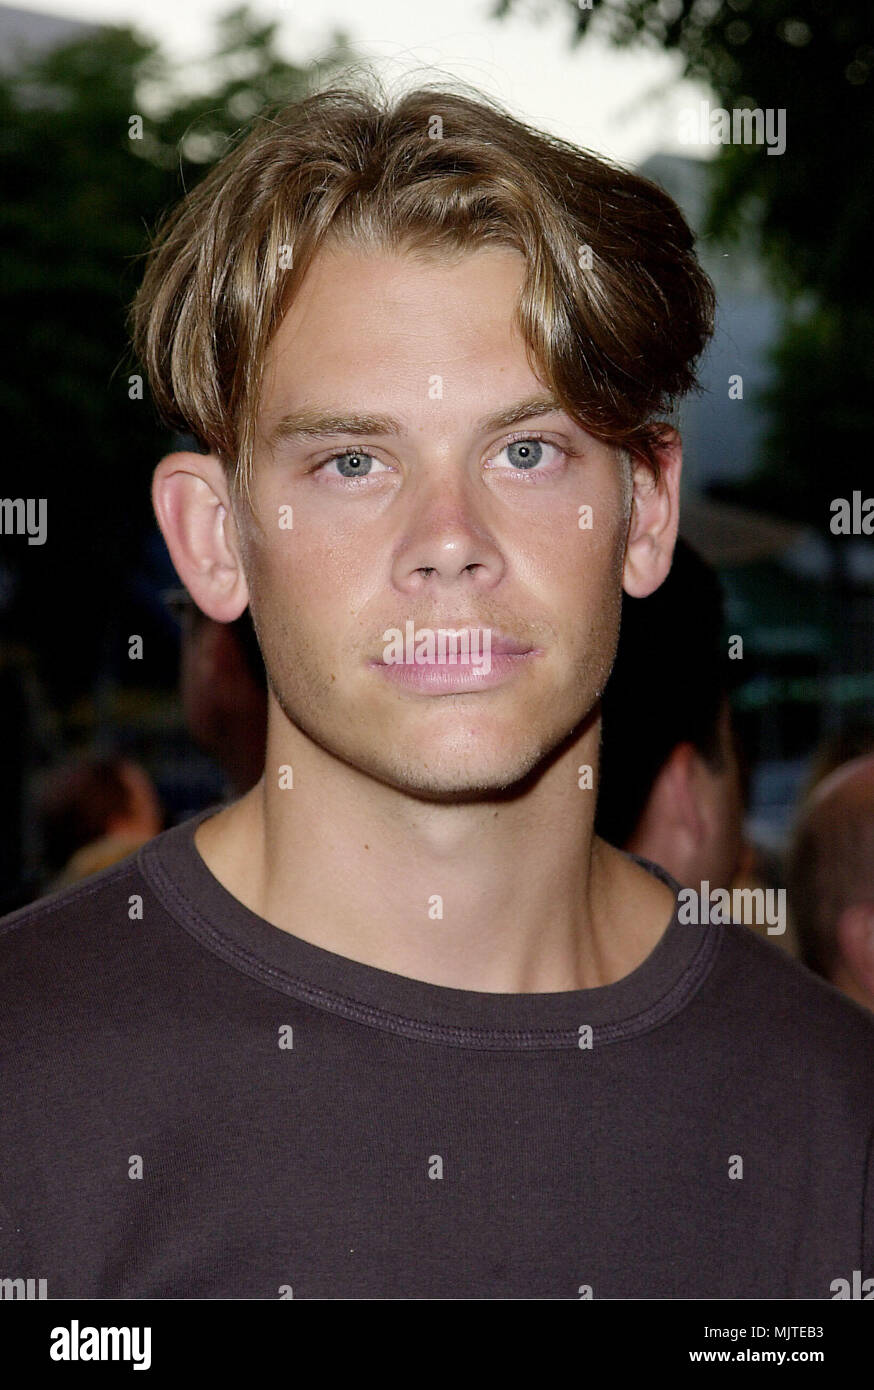 Christian 4 High Resolution Stock Photography And Images Alamy